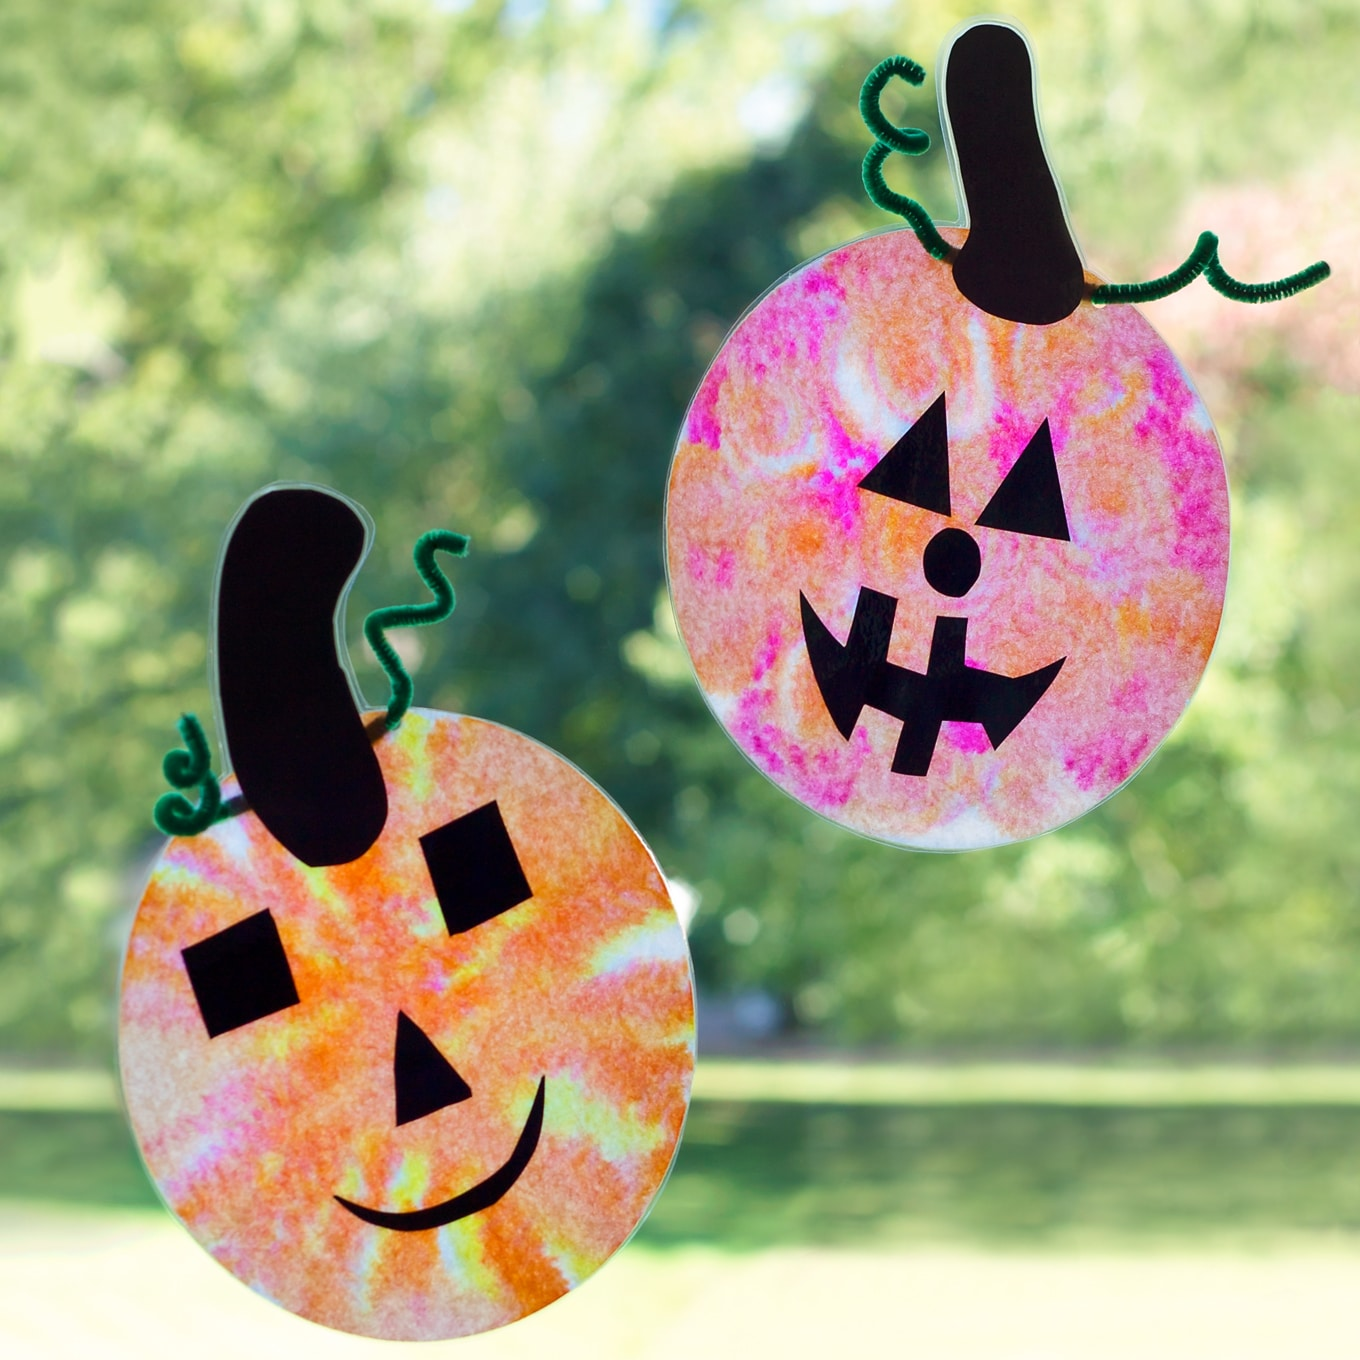 Just in time for Halloween, learn how to make adorable and simple jack o'lantern suncatchers with markers, coffee filters, and water.